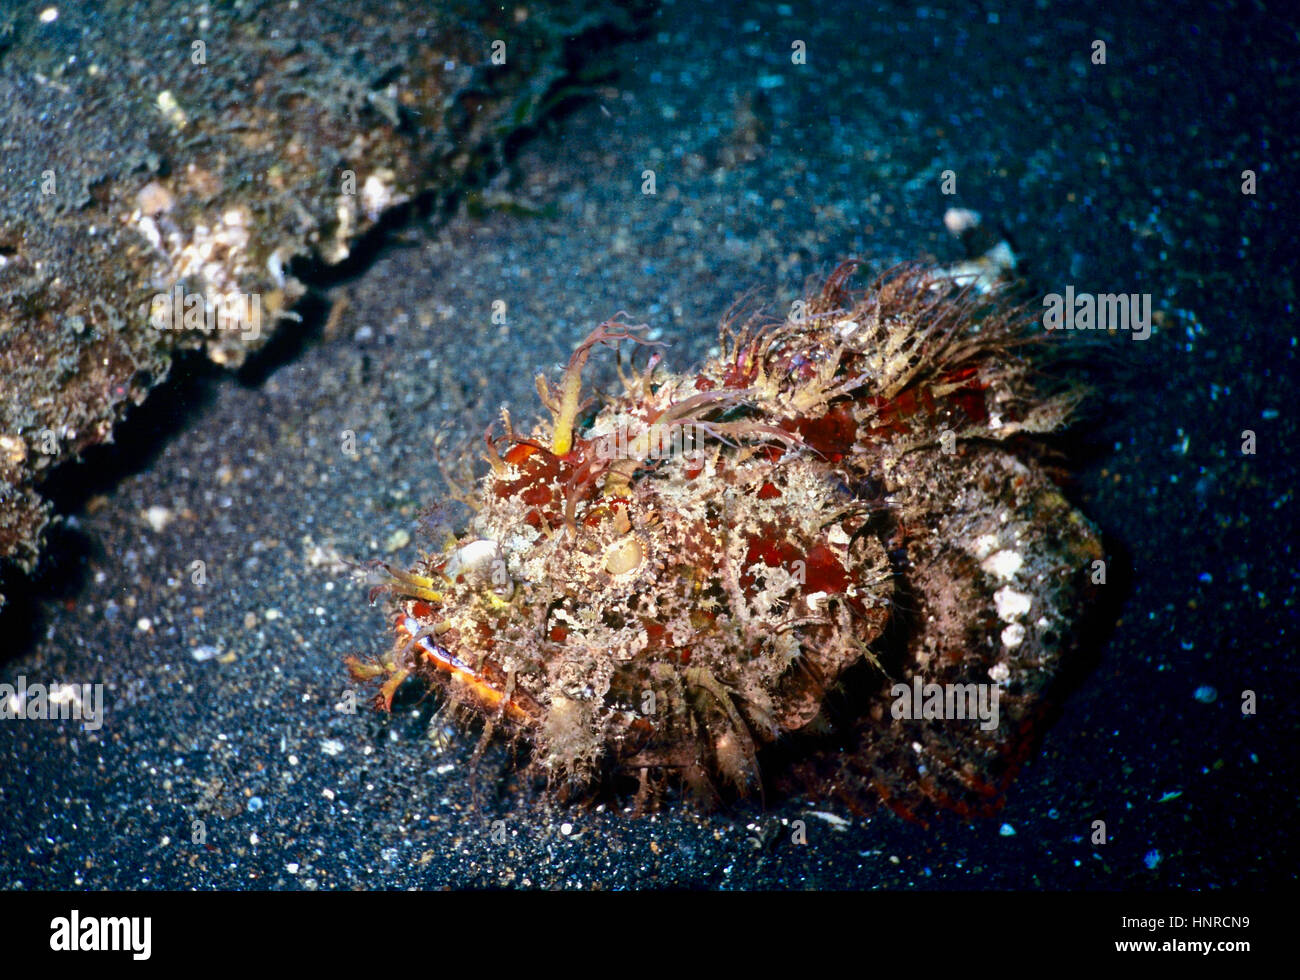 The hairy or striated frogfish (Antennarius striatus) - a highly camouflaged fast striking ambush predator - is - Stock Image